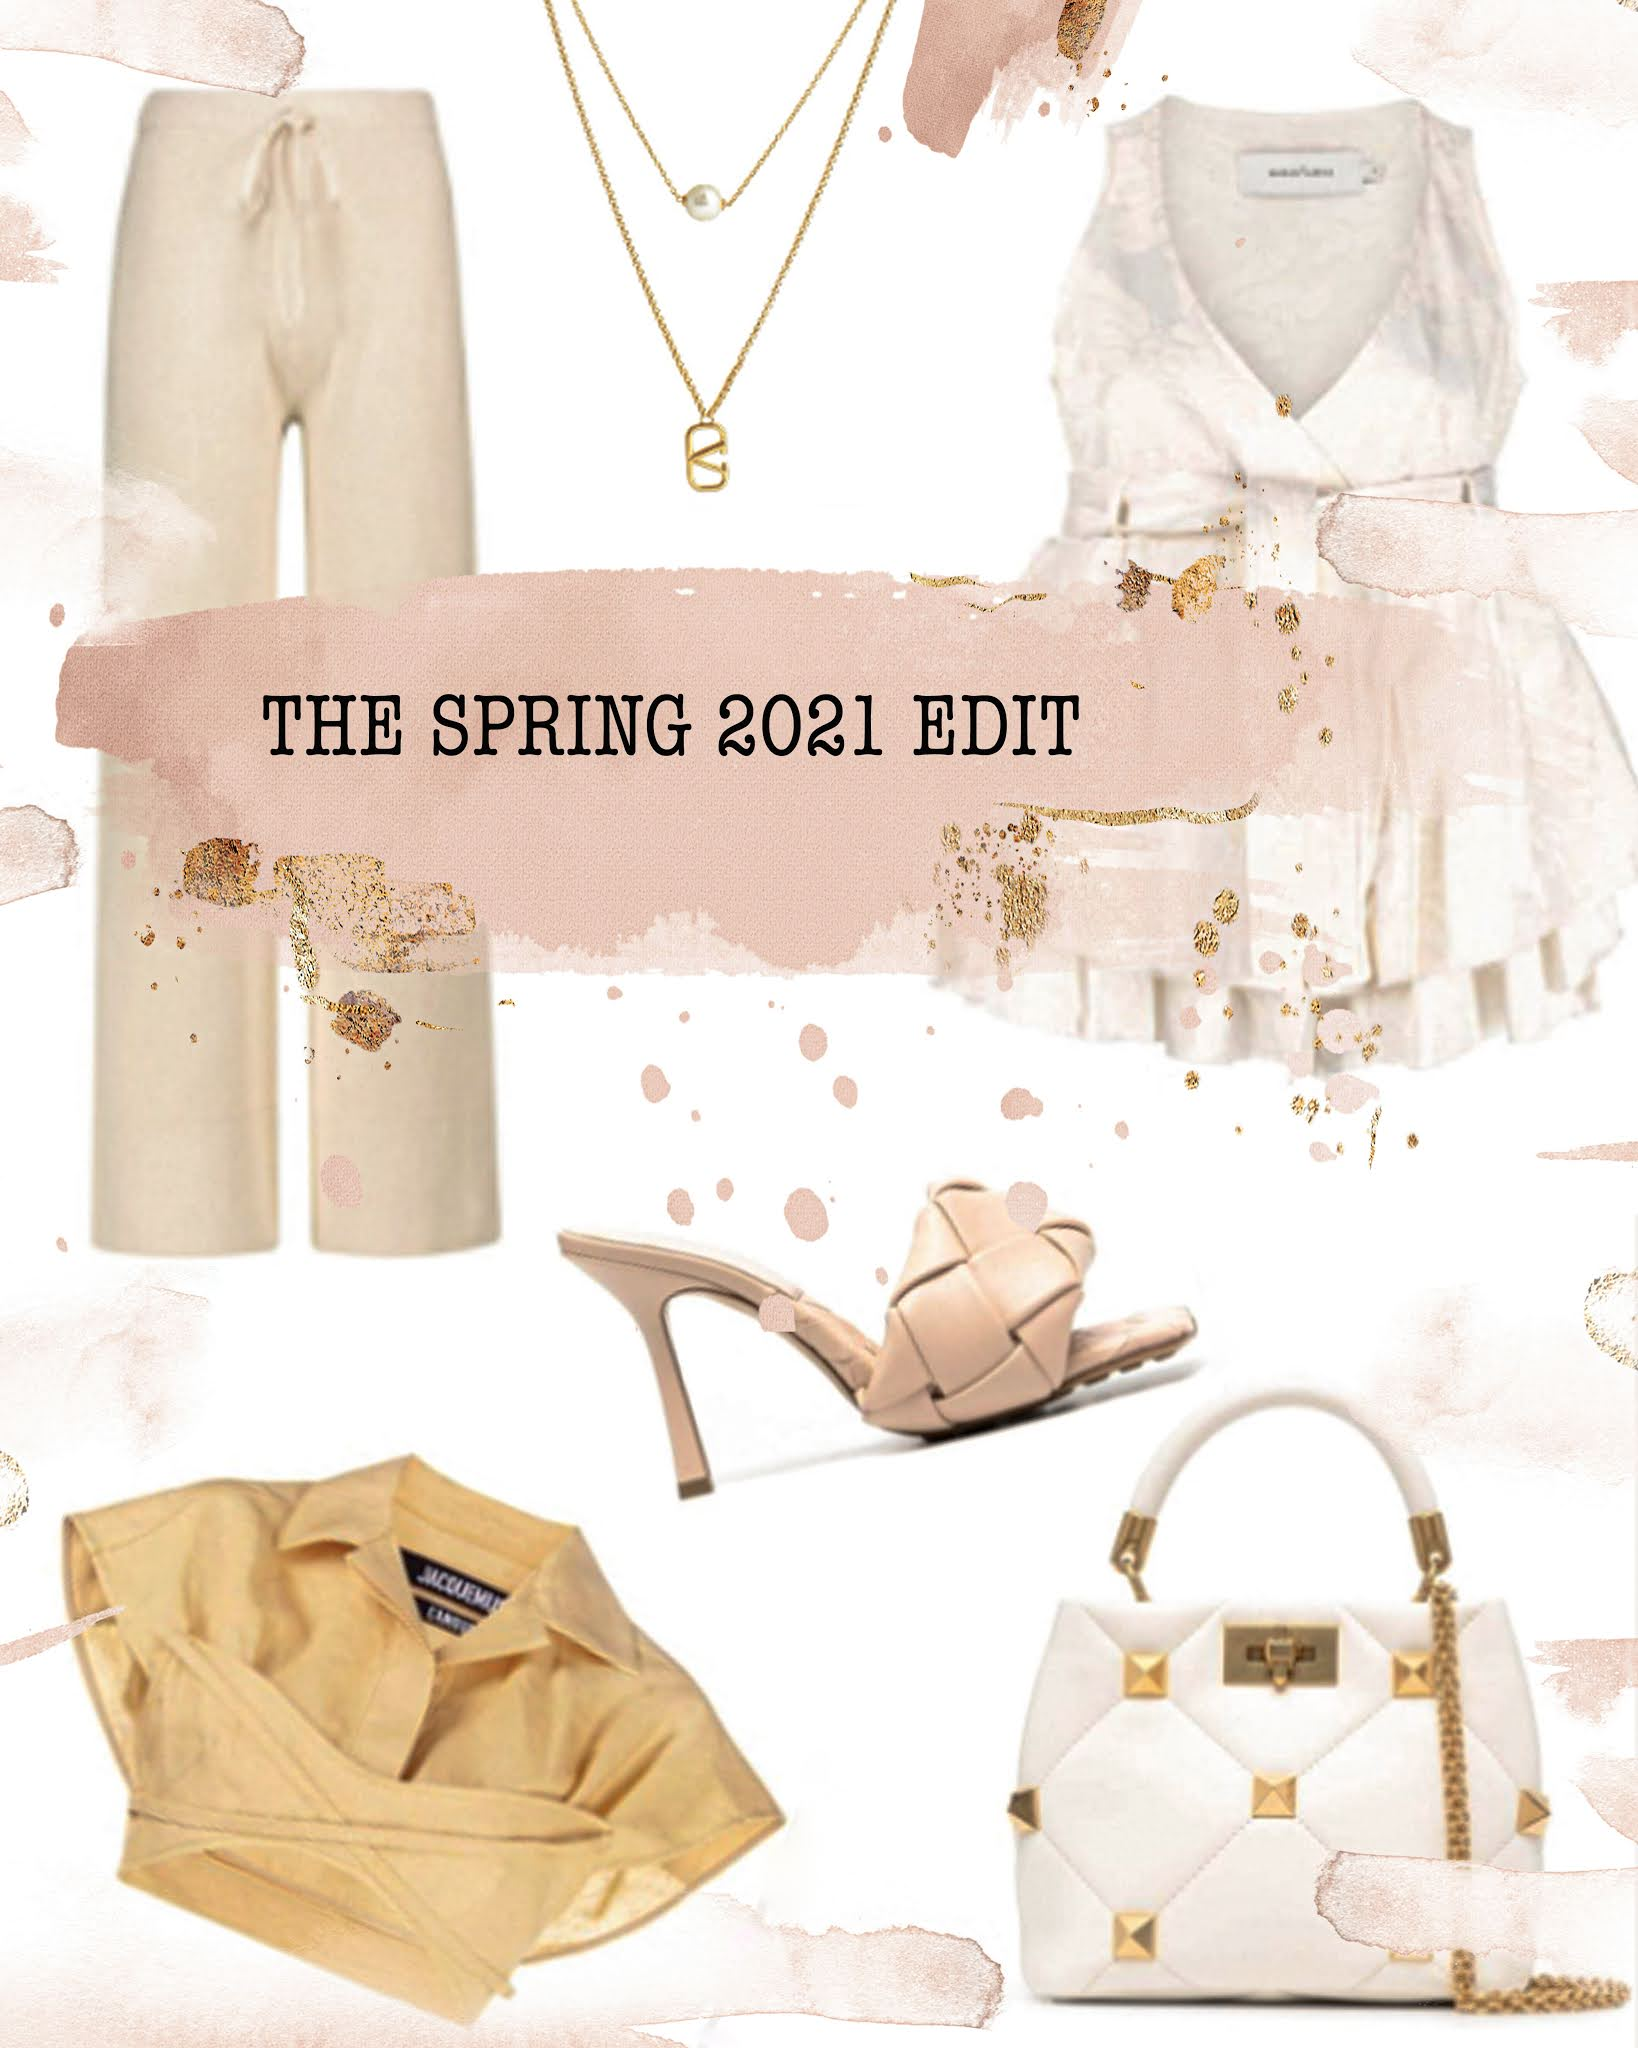 Spring 2021 Best Fashion Luxury Blog Edit